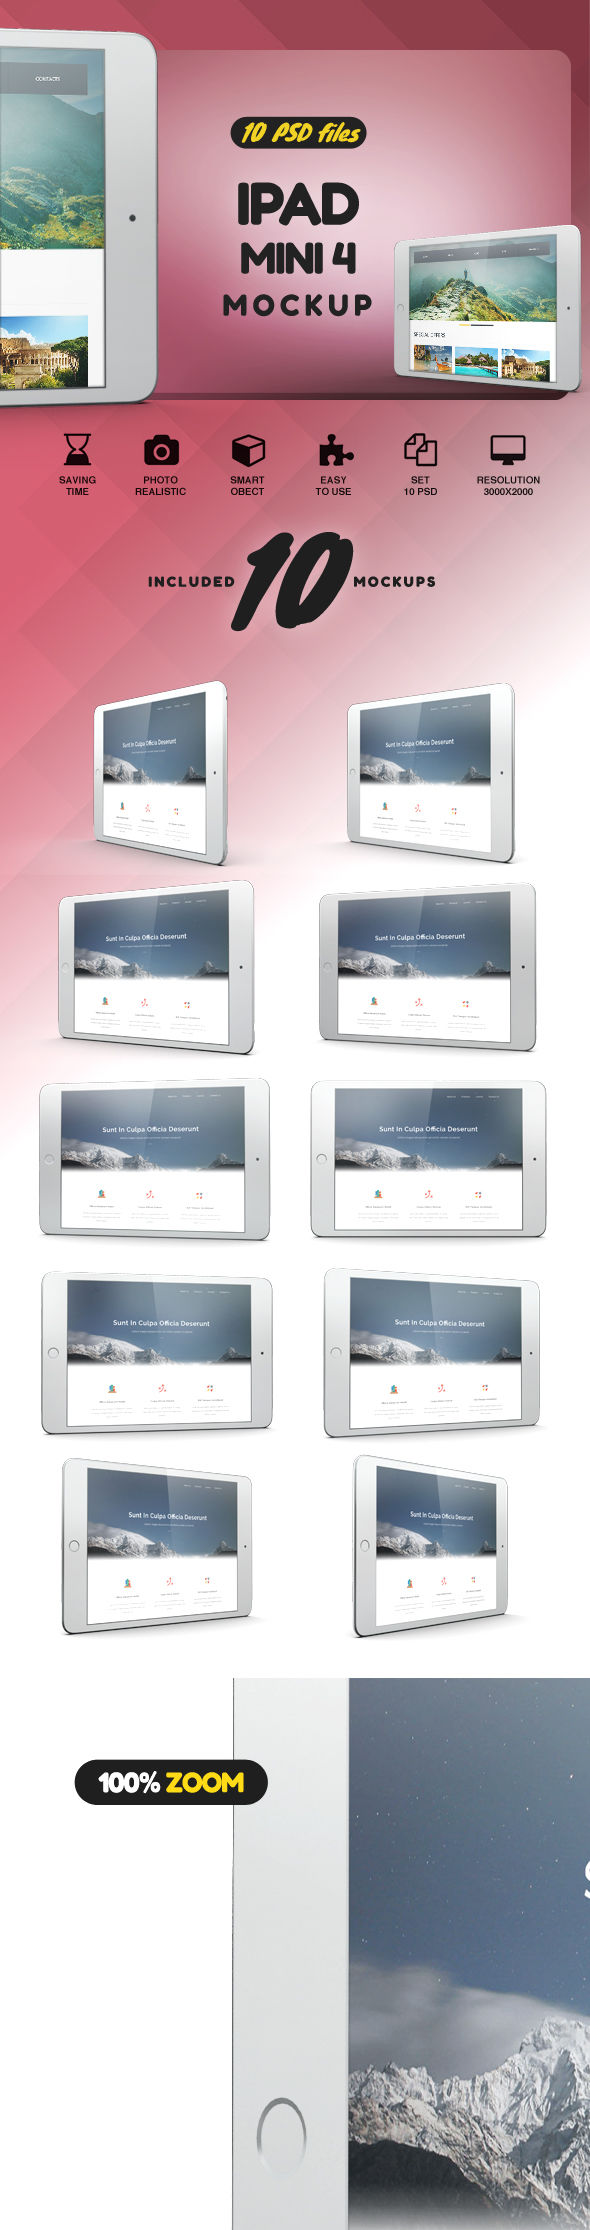 Download Website Display Mockup Psd Yellowimages